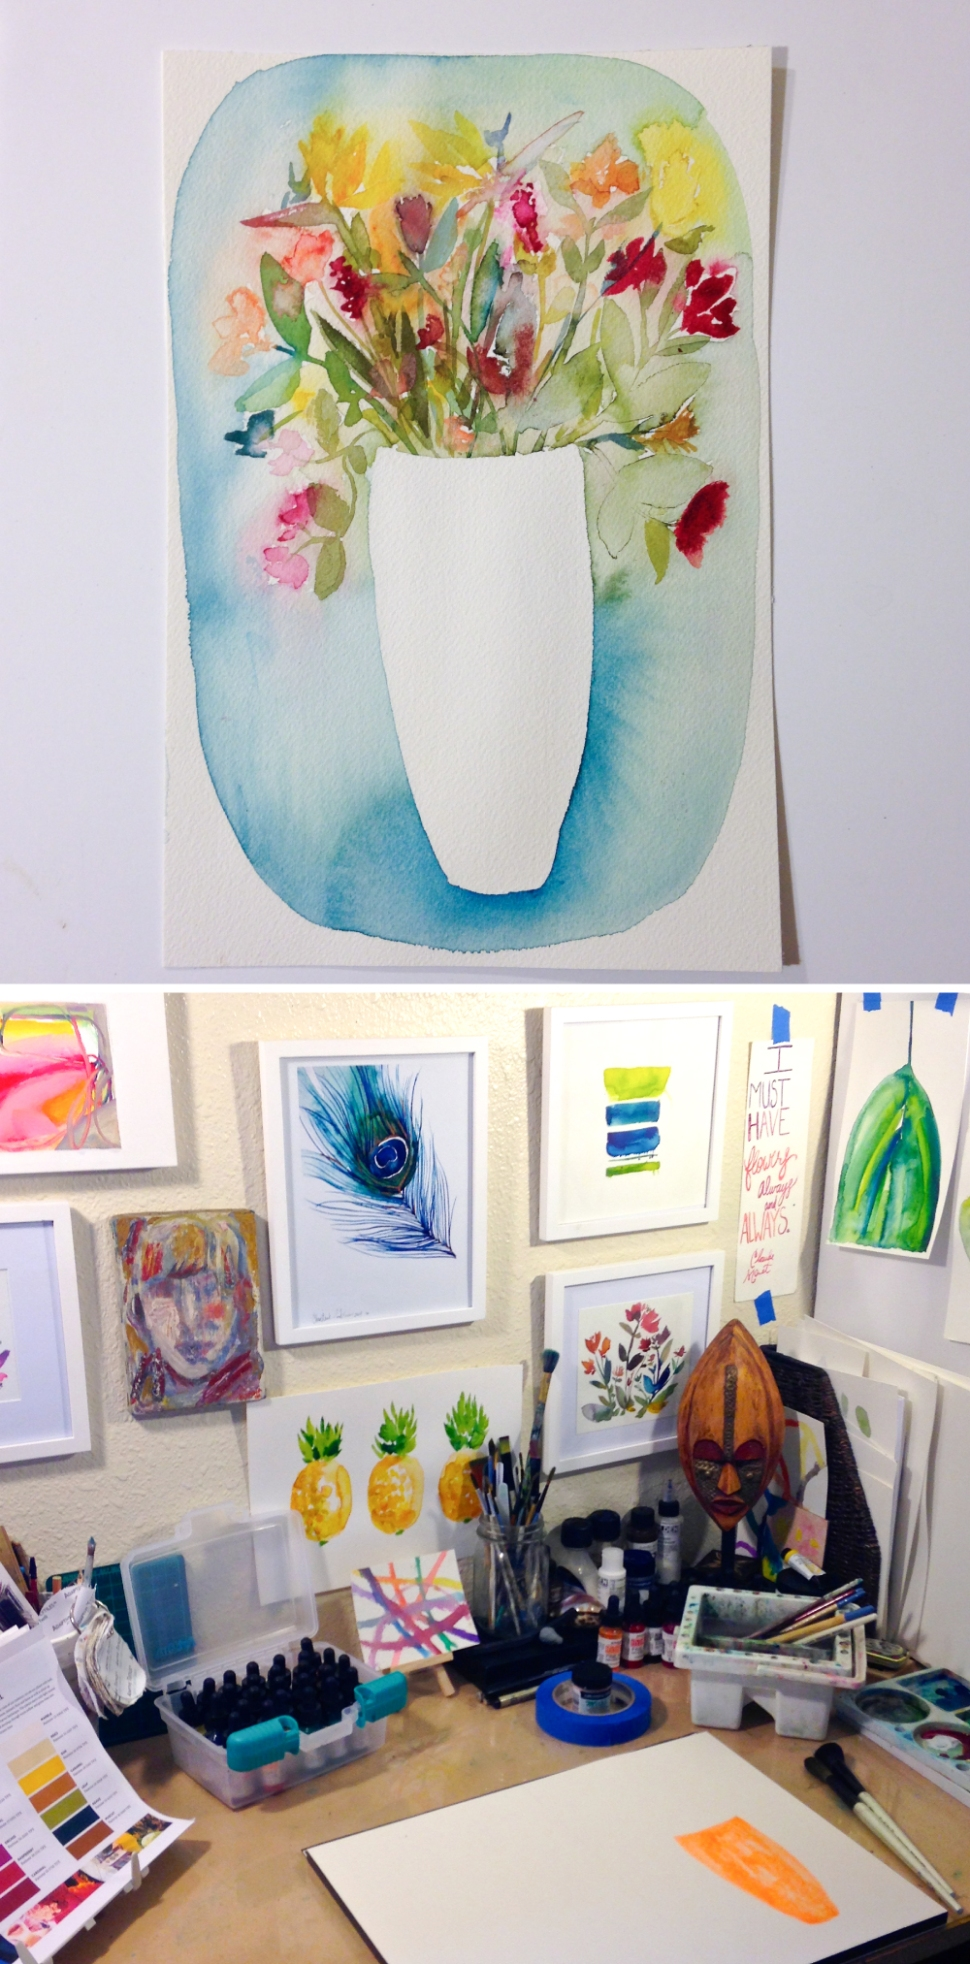 Artist interview with Kiana Mosley, a rad Minted artist